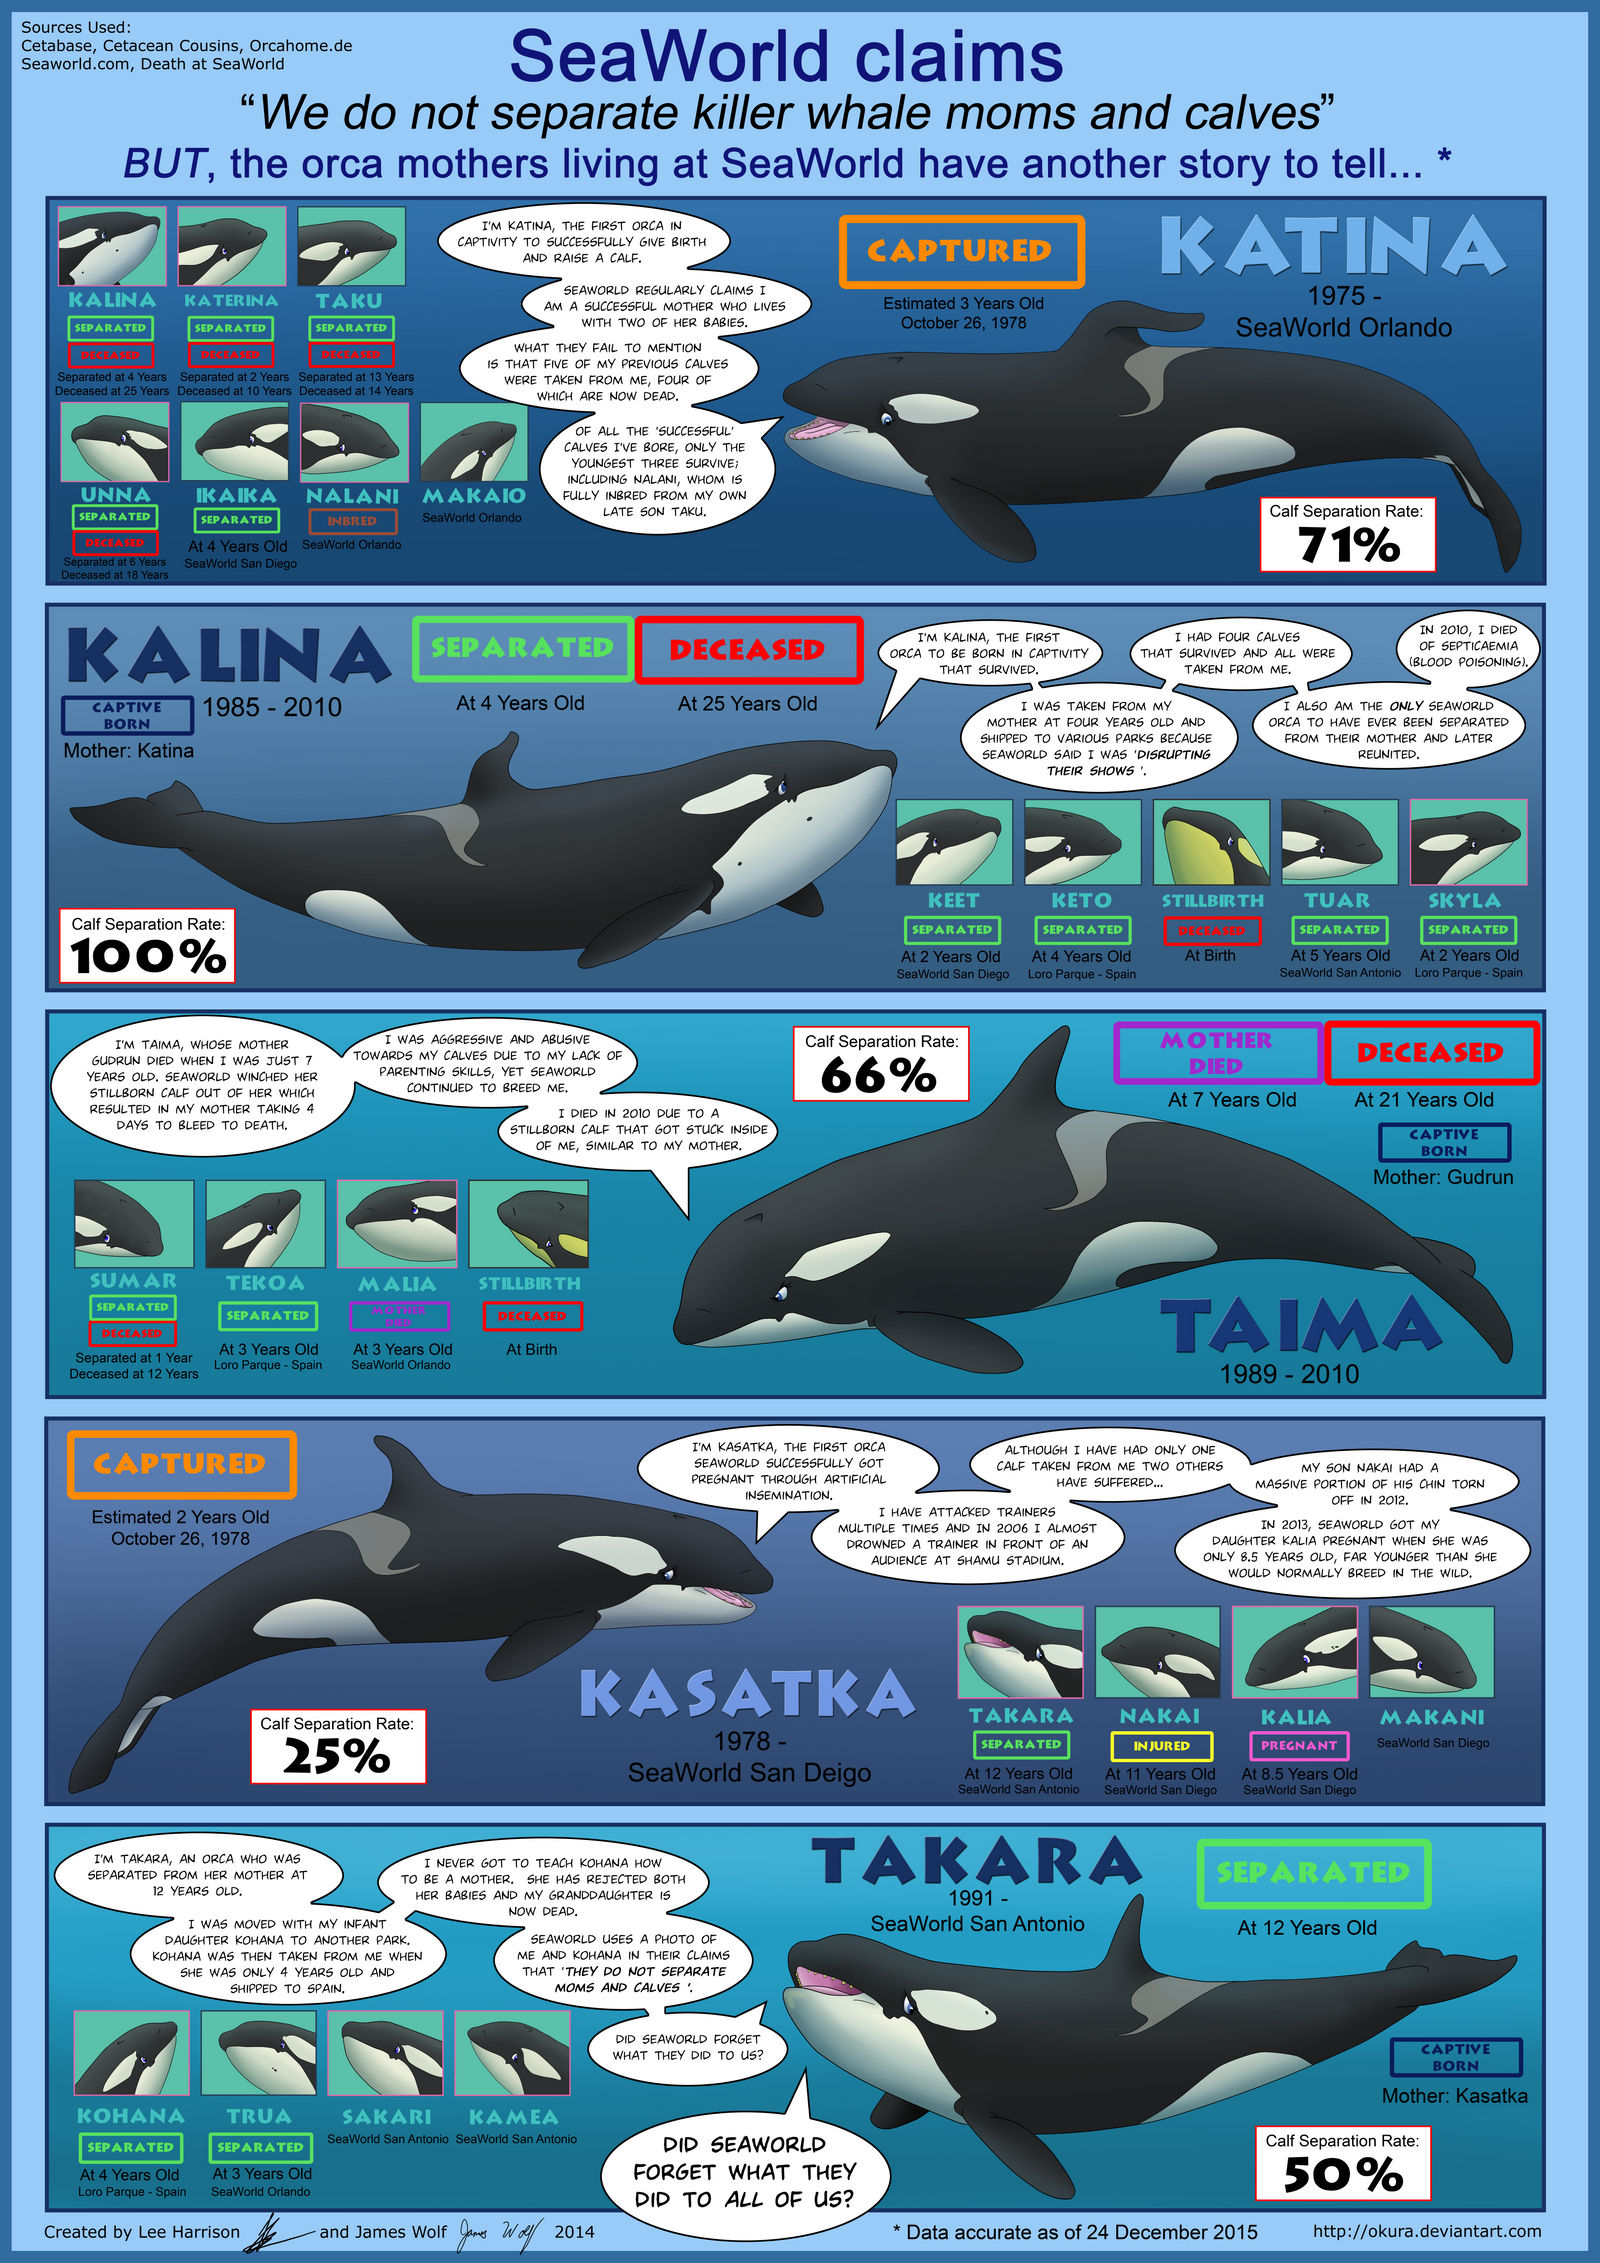 SeaWorld's Mothers and Calves by Okura